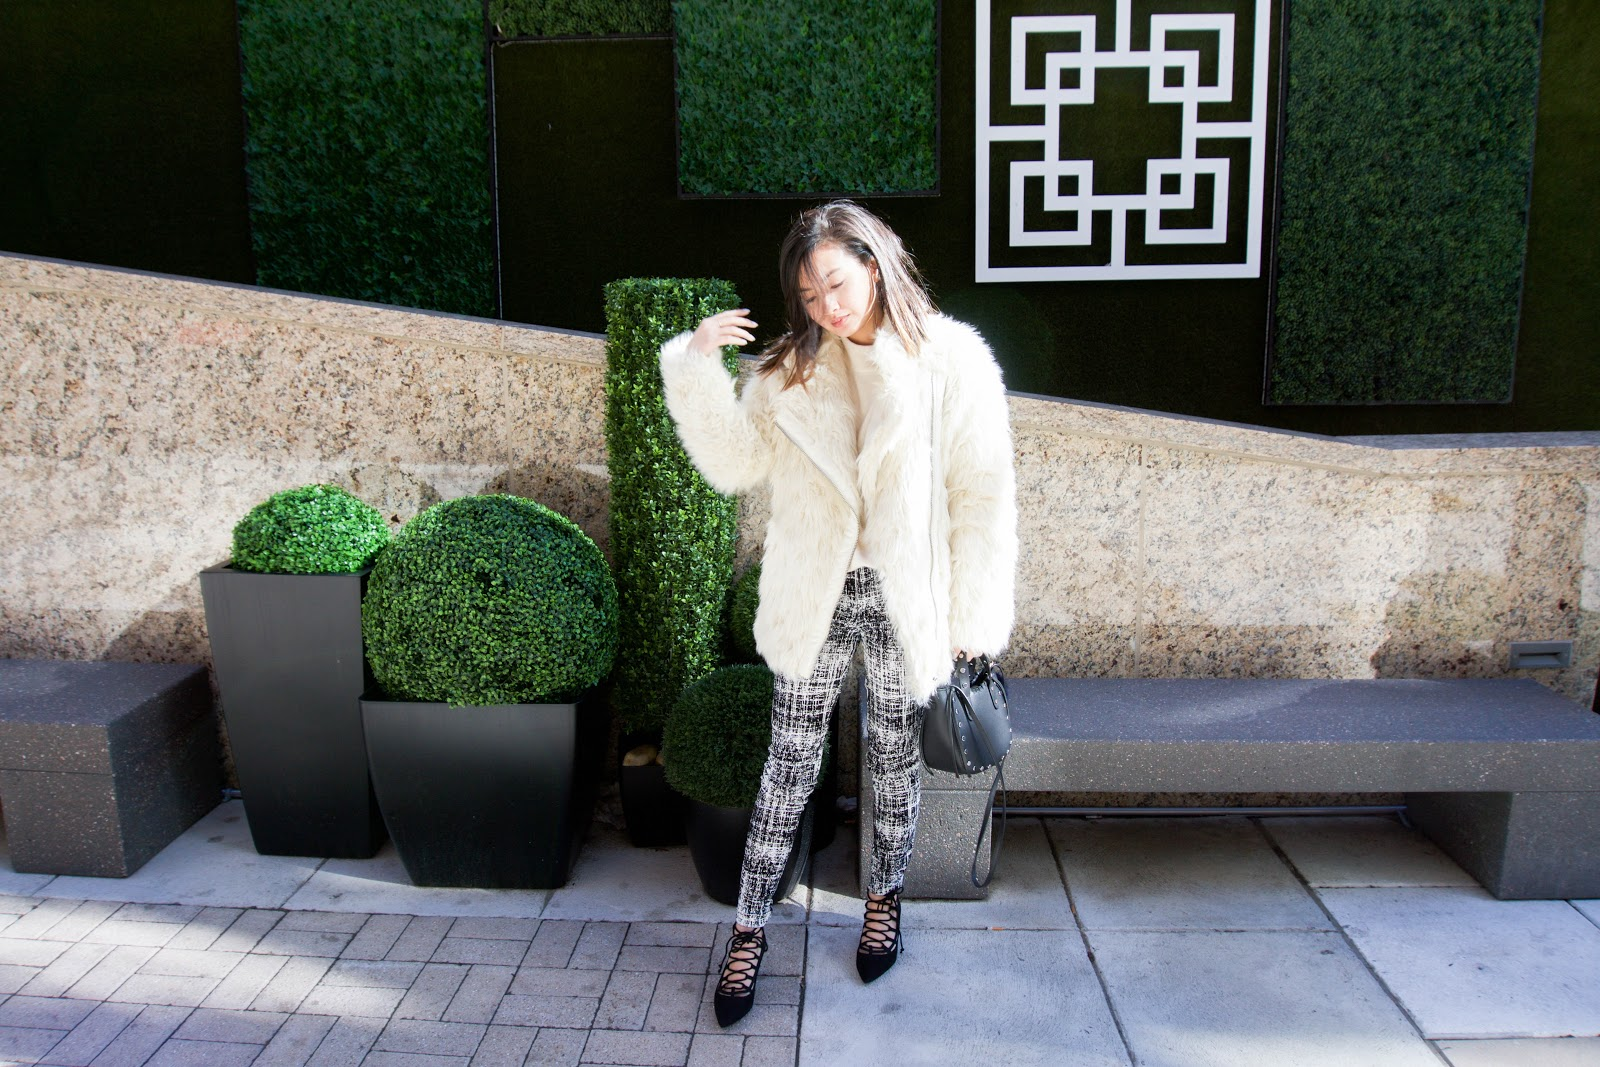 monochrome outfit of the day fashion zara h&m forever21